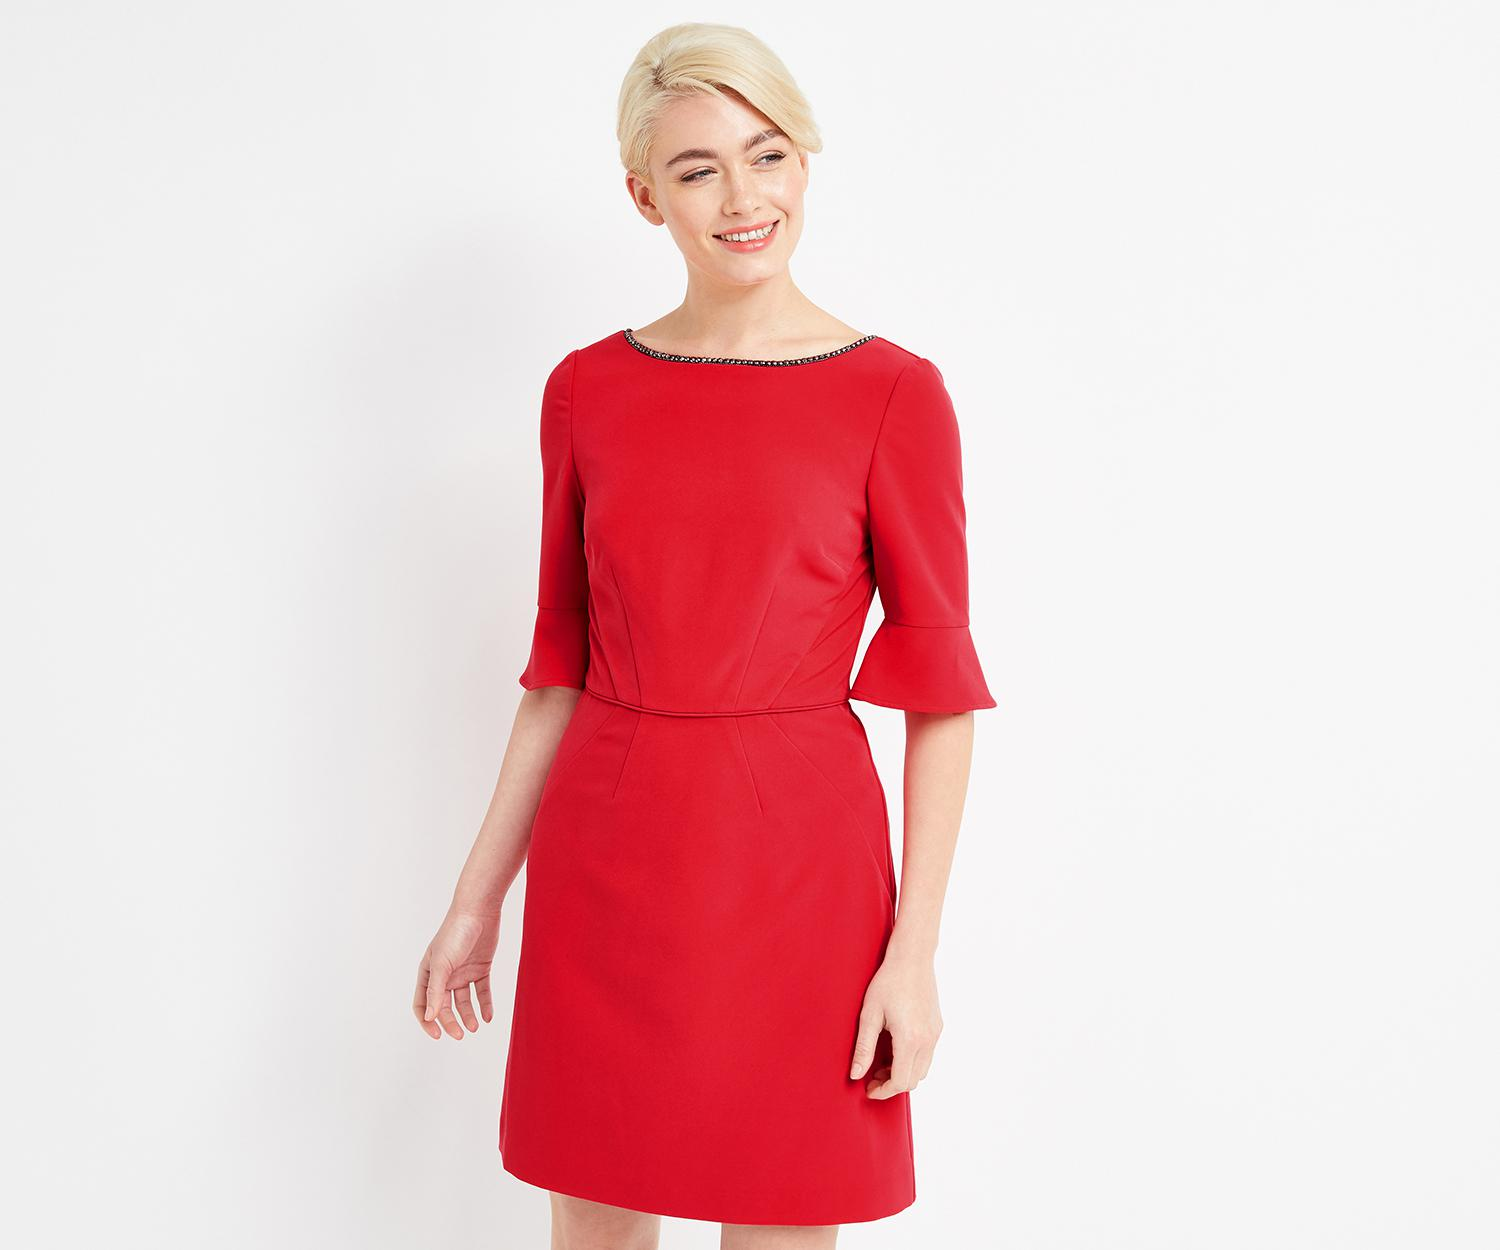 757f46158f9e Oasis Red Embellished Shift Dress - The Best Style Dress In 2018